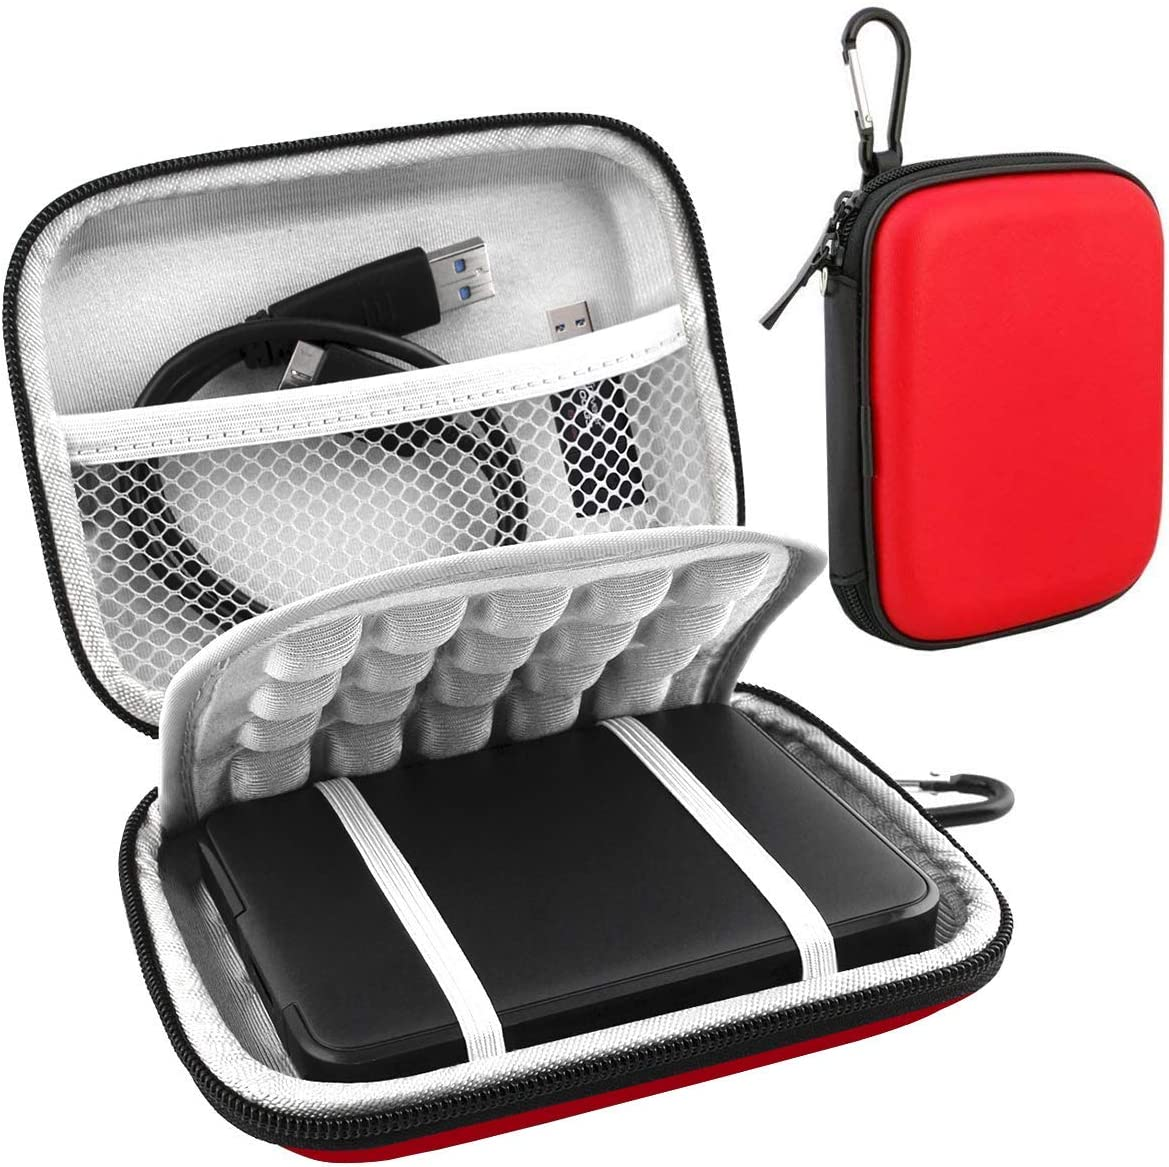 Lacdo Hard Drive Carrying Case for Western Digital WD My Passport Ultra WD Elements SE WD Gaming Drive Portable External Hard Drive 1TB 2TB 3TB 4TB 5TB USB 3.0 2.5 inch HDD Shockproof Travel Bag, Red